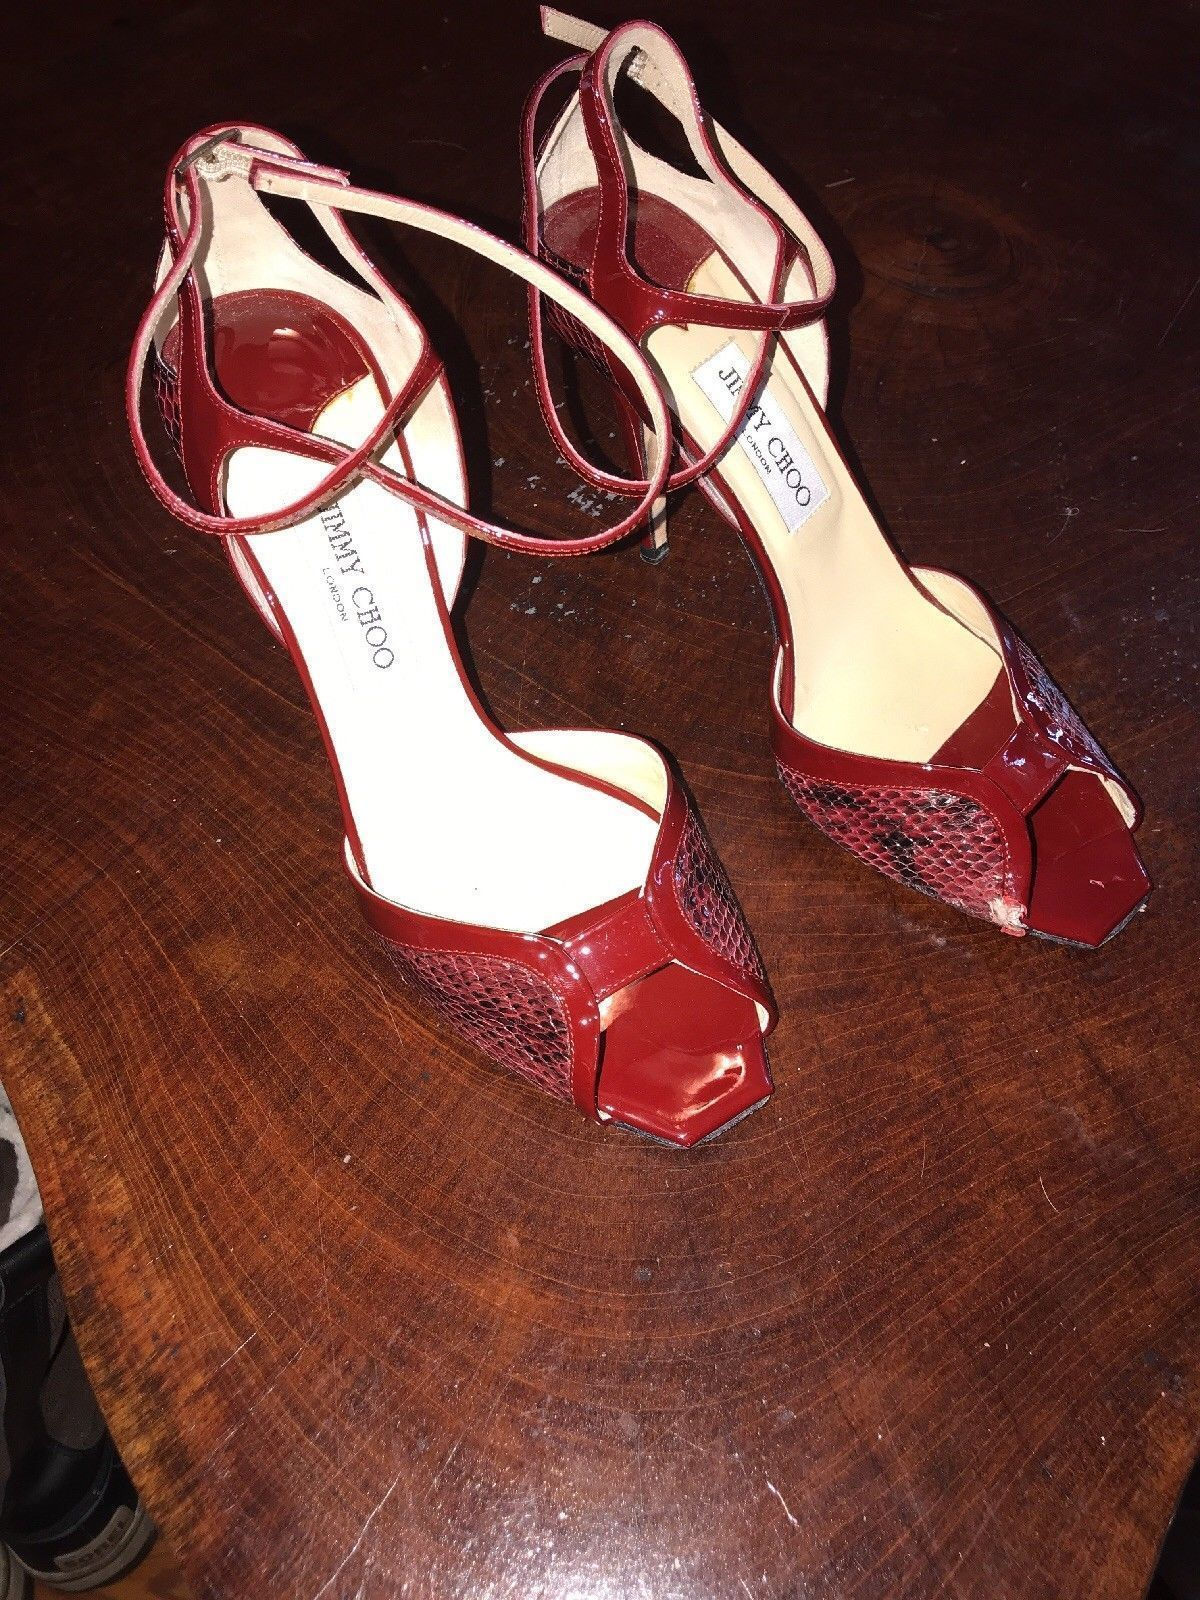 d7bec4388bb5 jimmy choo Red Snakeskin Strappy Heel Size 39 1 2